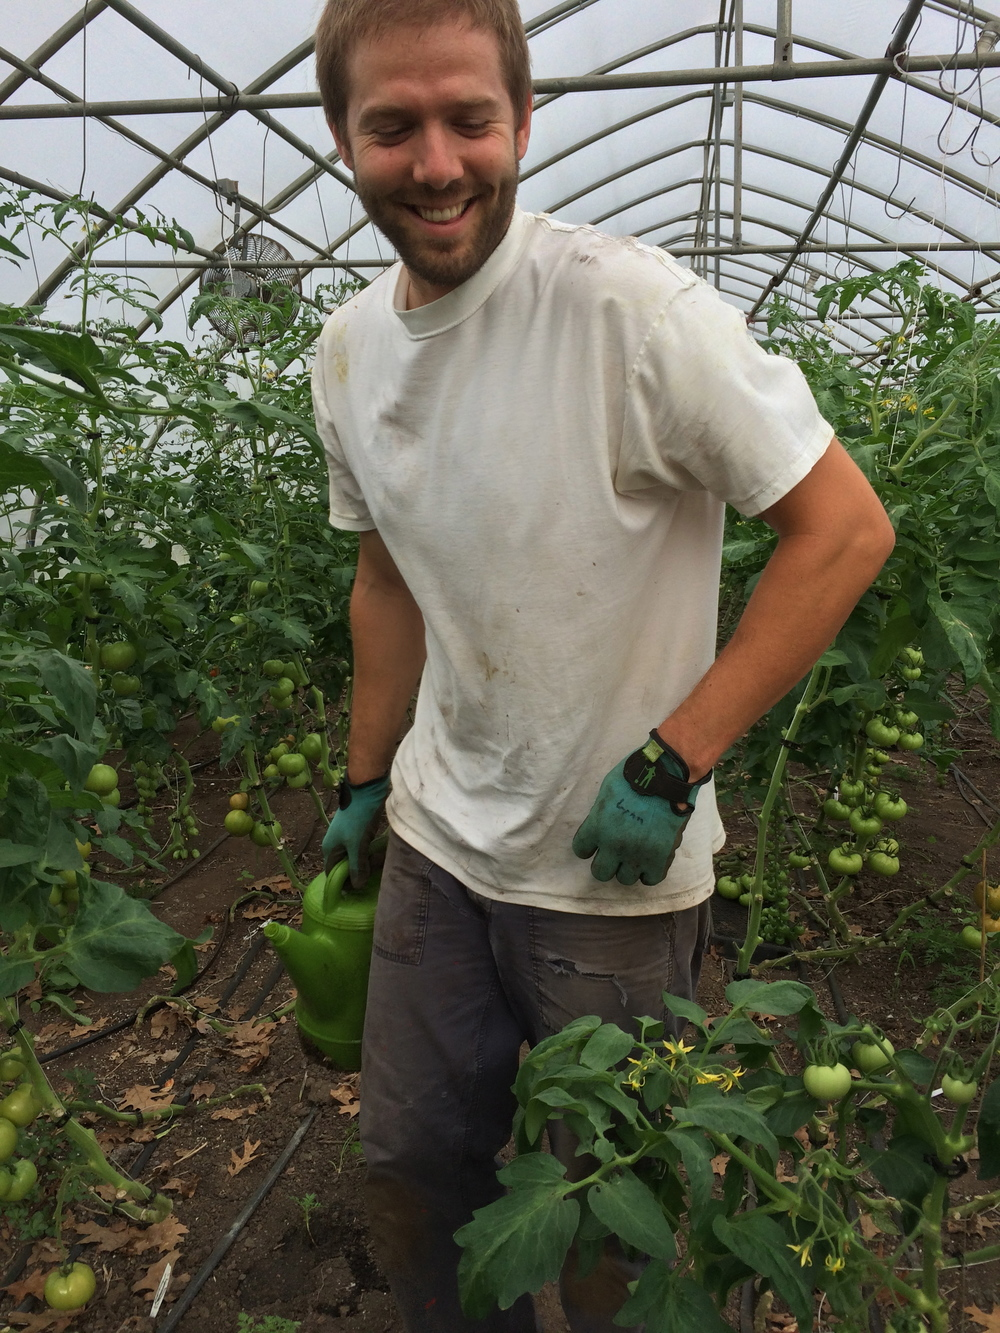 Ryan Chin- Wise guy/Farmhand/Seasonal Volunteer   During the year Ryan is an inspirational educator at a local high school. His leadership skills and enthusiasm are an asset to us at the farm. A hard worker, Ryan volunteers at the farm when school is out. With a natural love for gardening and the natural world, Ryan has been volunteering and learning from Mr. Holbrook for almost a decade. He is a major part of the farm and we love him.